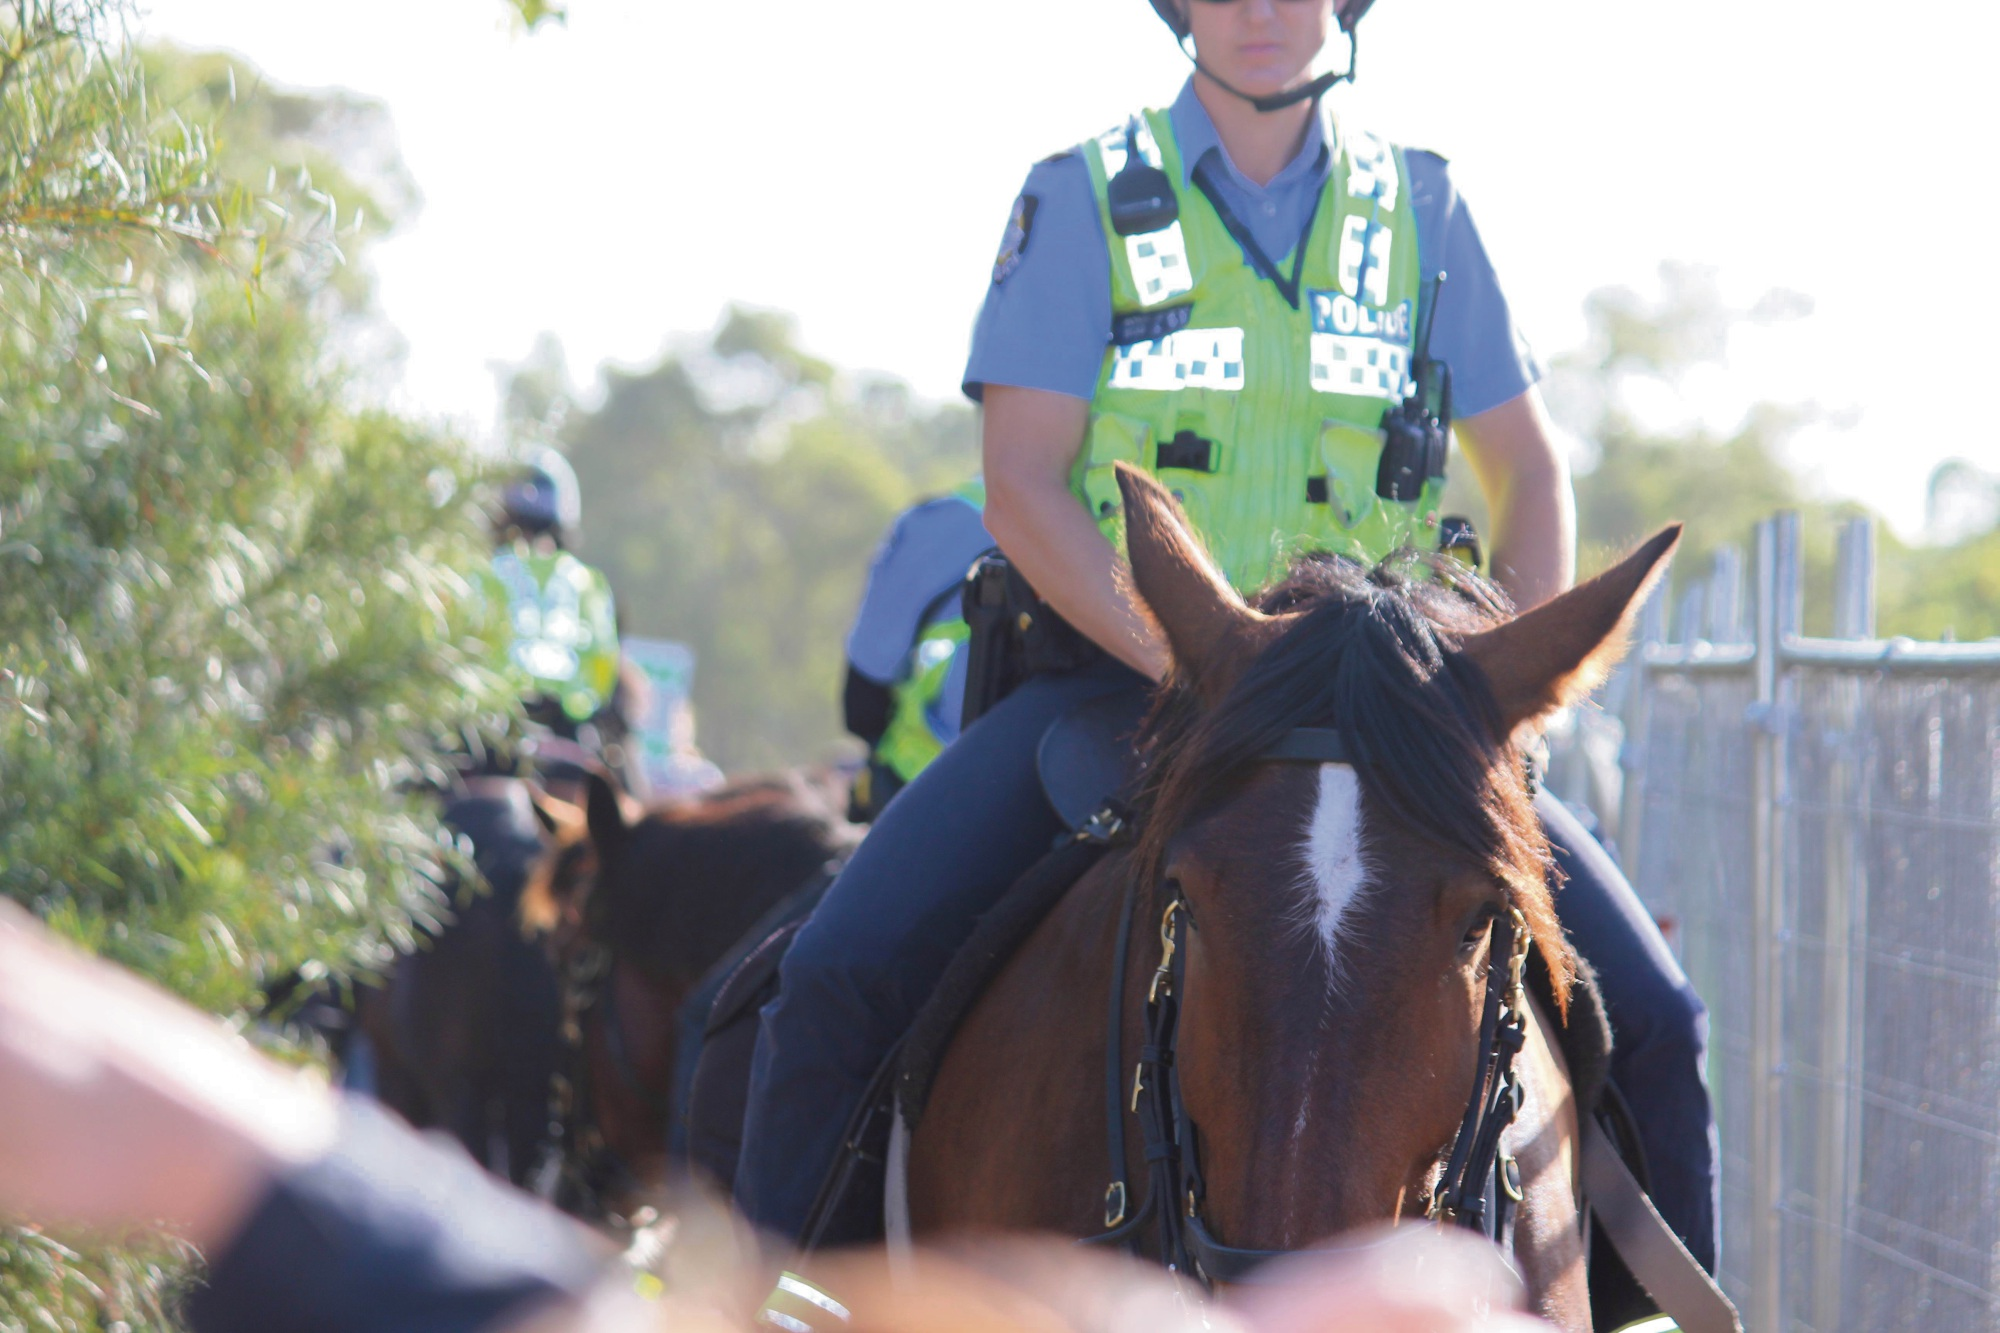 Police horse injured after striking a cable in Bibra Lake